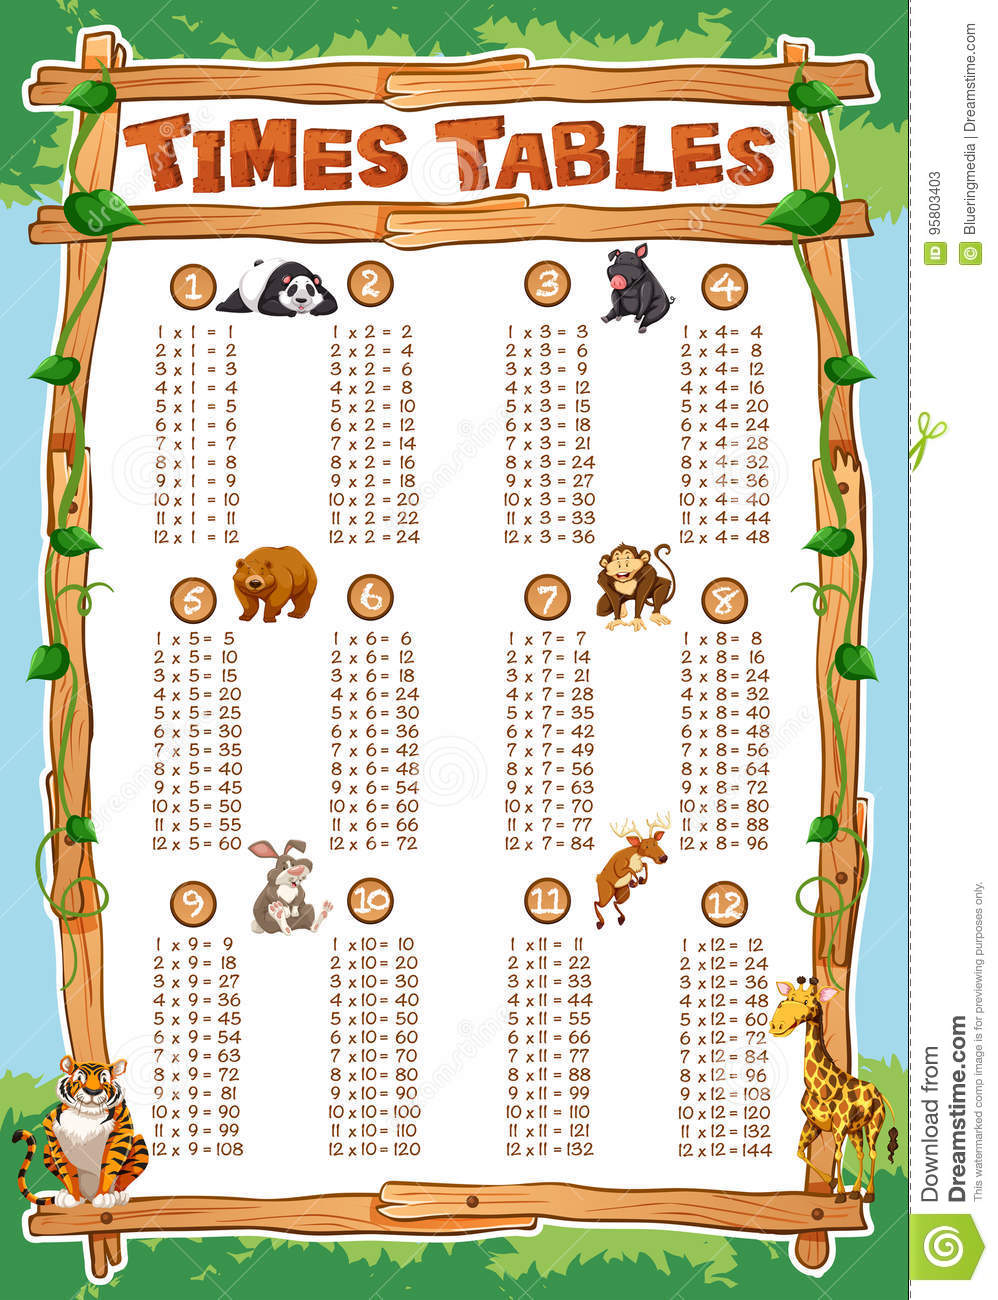 Times Tables Chart With Animals In Background